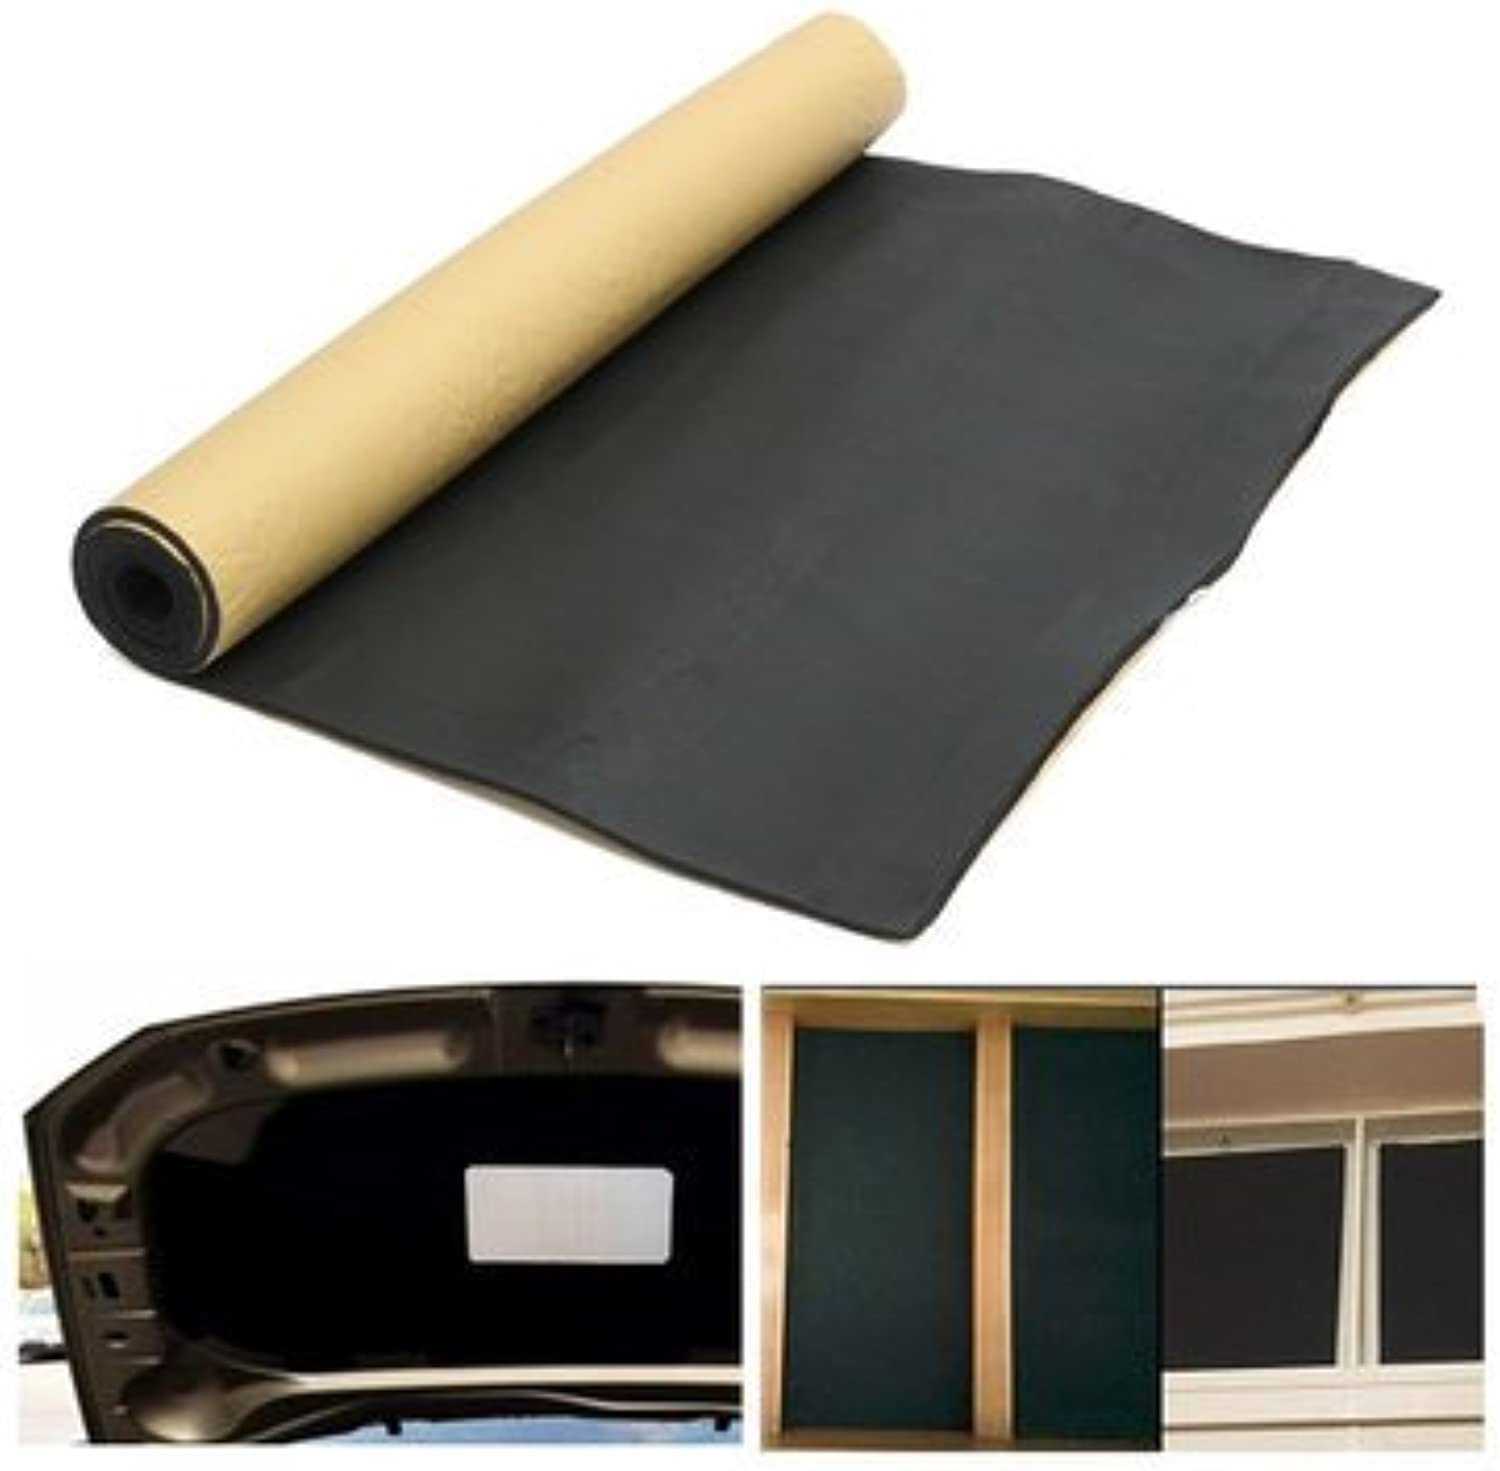 Car Modifications Sound & Heat Insulation Cotton  300cmx100cm 3mm Car Sound Proofing Deadening Heat Insulation Closed Cell Foam  1 X Sound Proofing Deadening